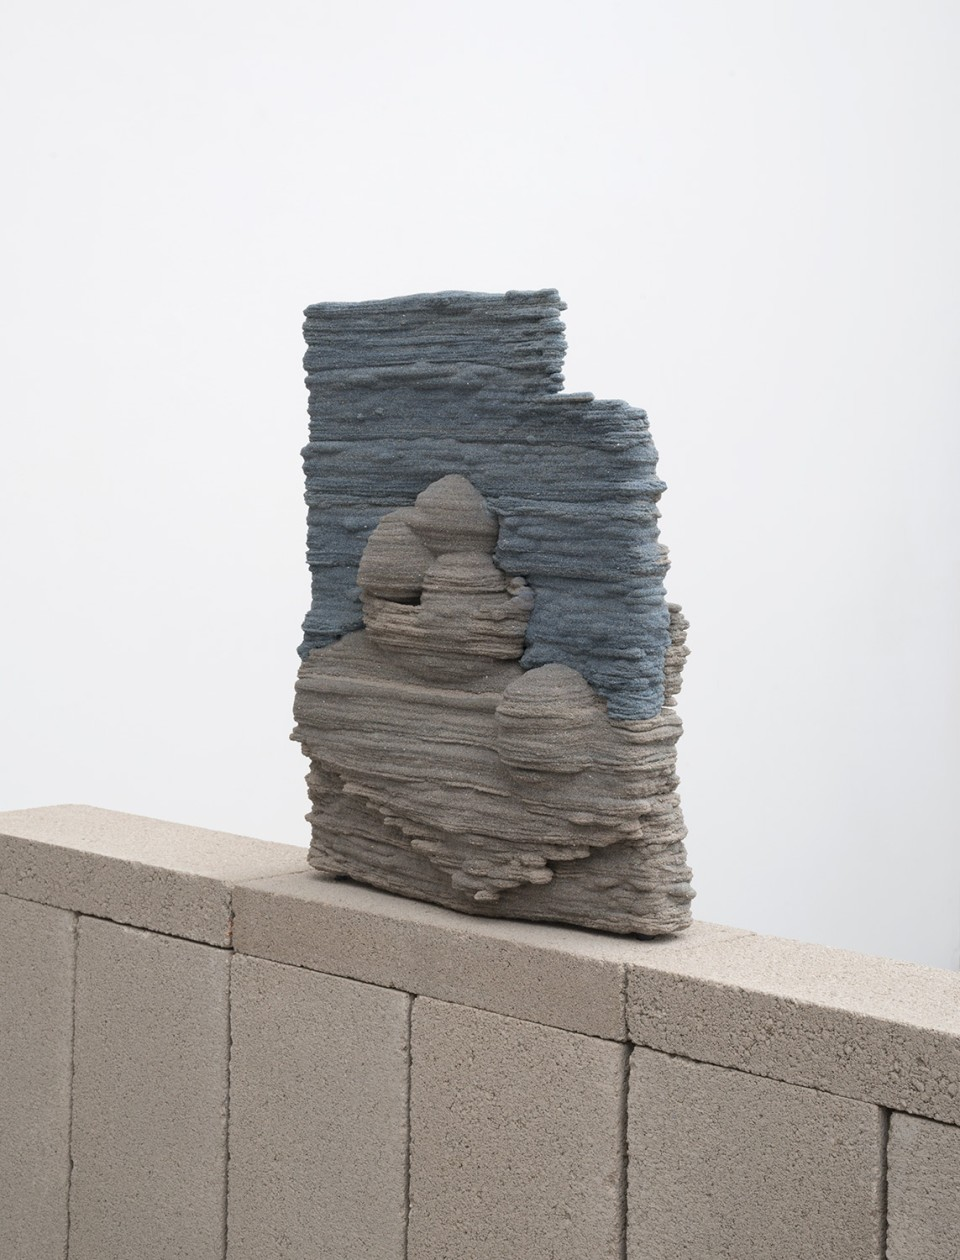 Image: Dwyer Kilcollin  Tableau (a line, and blue), 2016  resin, stone and stainless steel inlets  17 x 14 x 5 inches (approx)